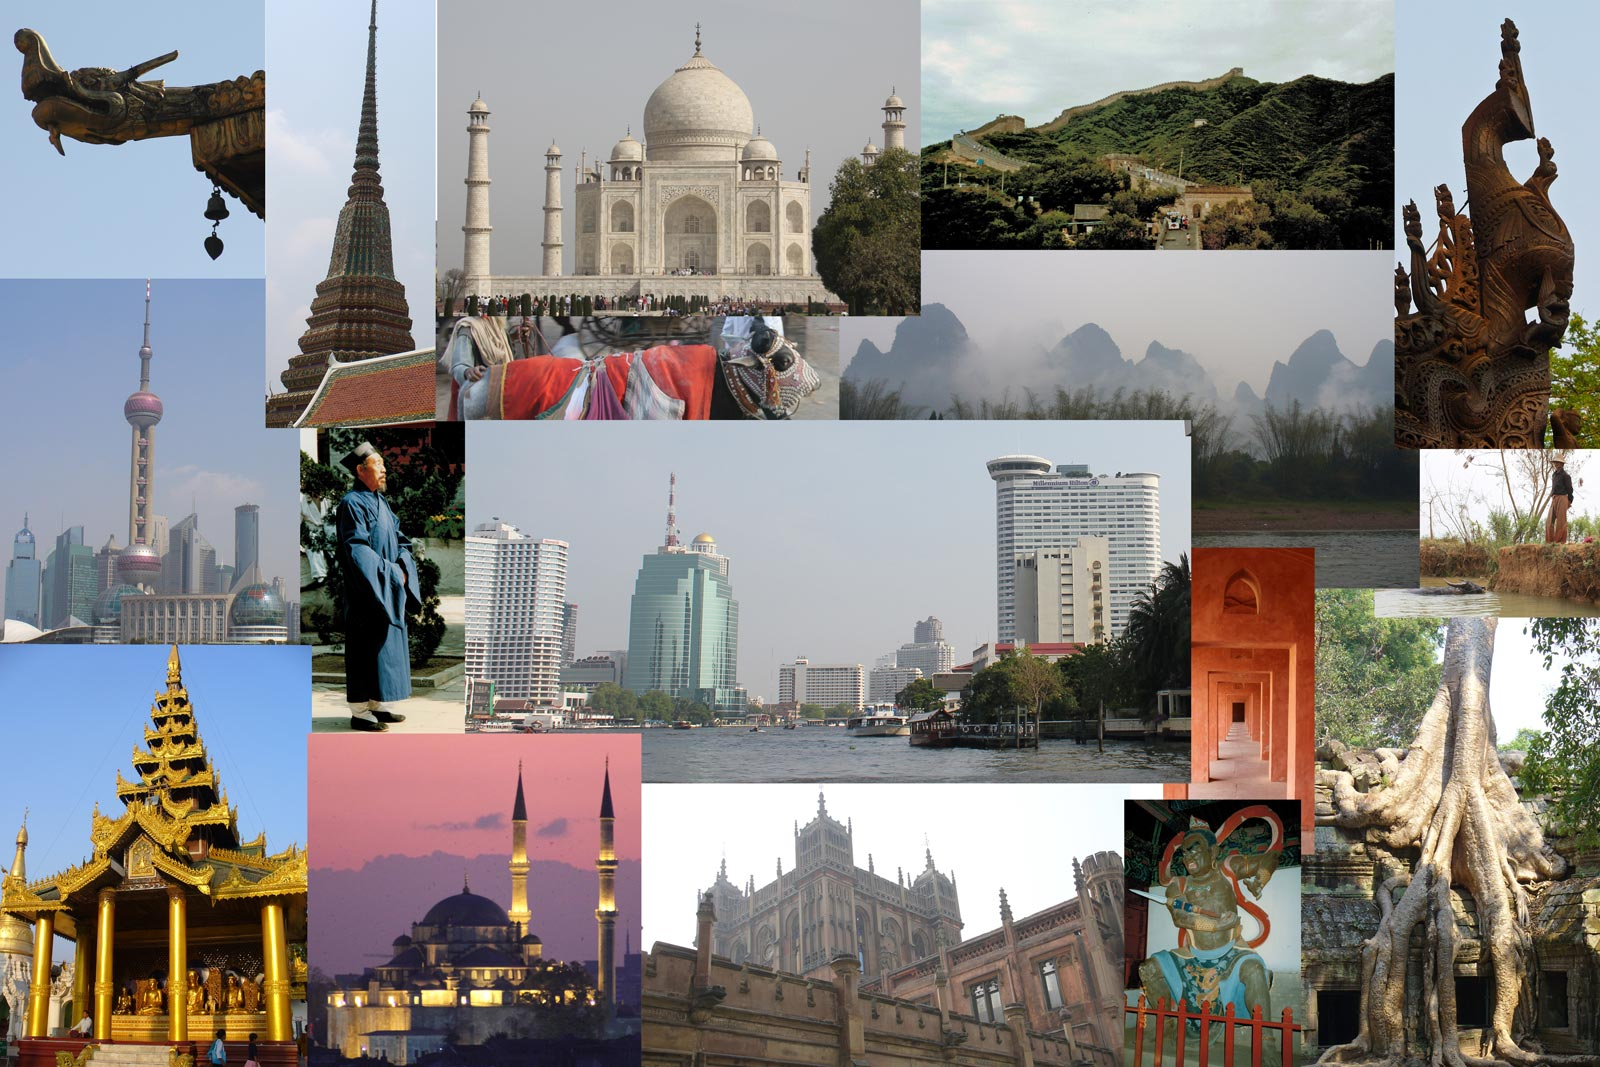 collage consisting of photographs of different sizes taken in Asia, depicting i.a. various buildings, skylines, a temple, nature and wildlife.